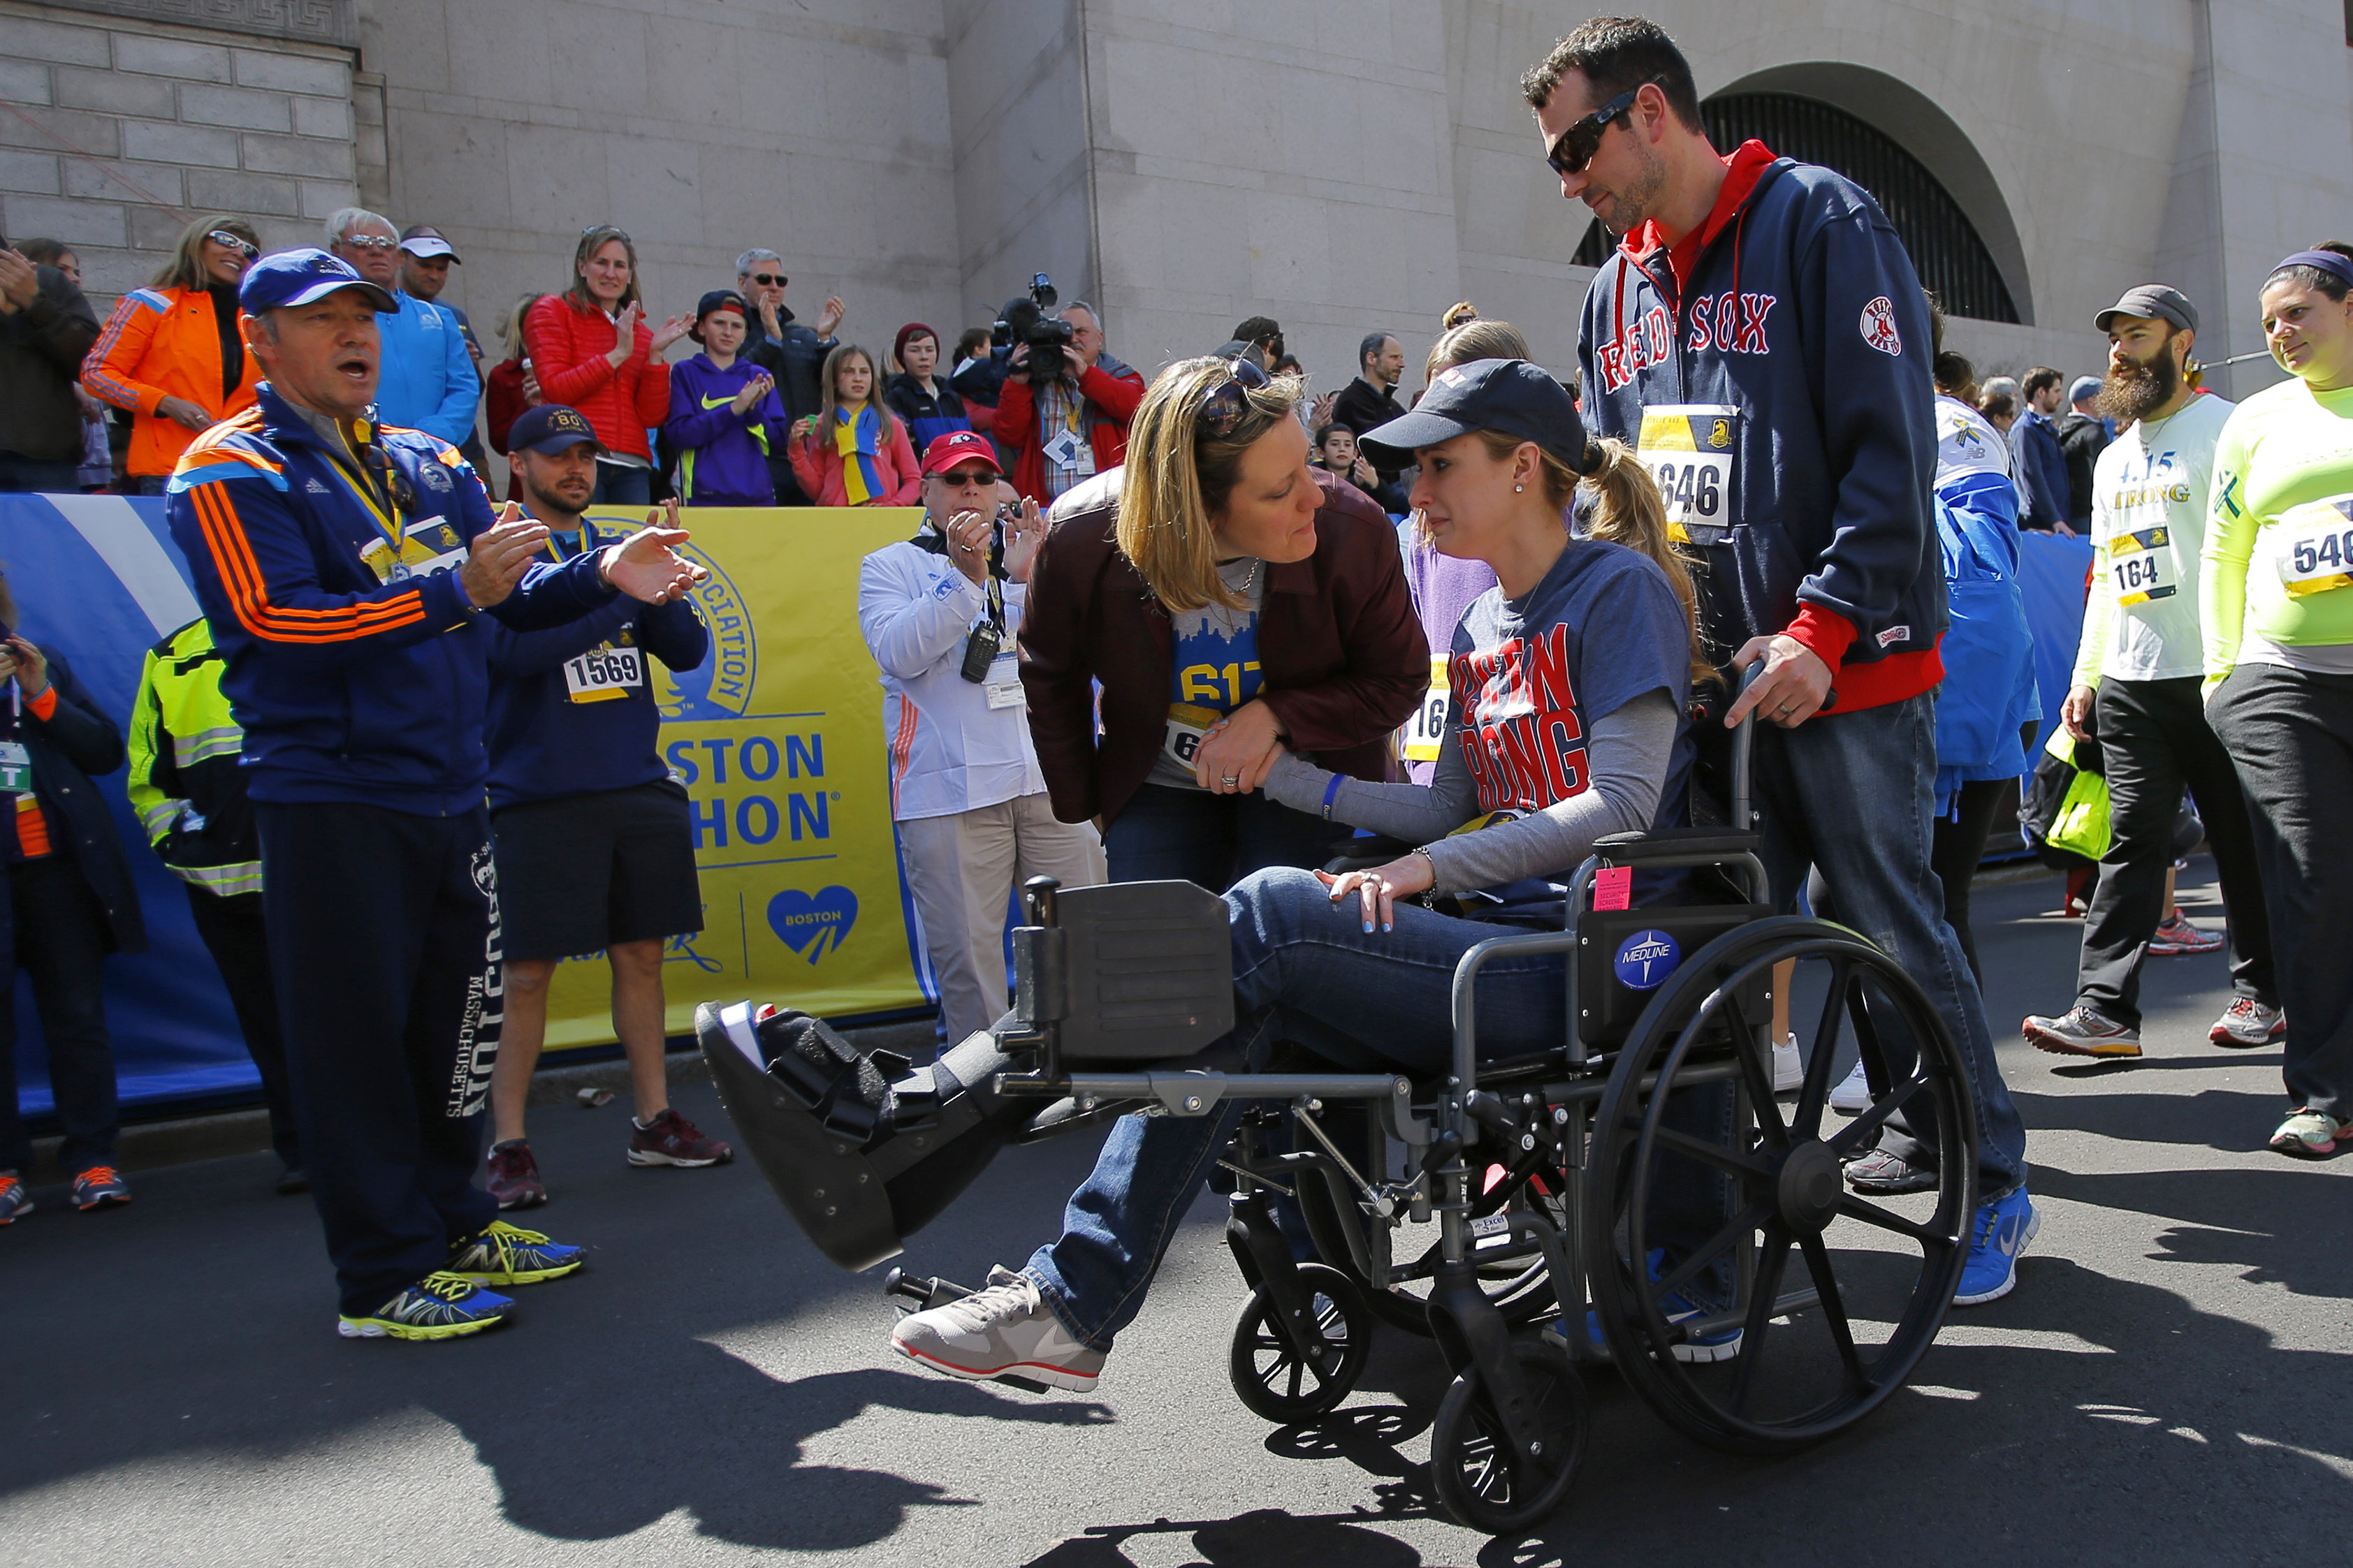 Actor Kevin Spacey (L) cheers on as 2013 Boston Marathon bombing survivor Rebekah Gregory DiMartino (2nd R) crosses the marathon finish line during a Tribute Run for survivors and first responders in Boston on April 19, 2014.